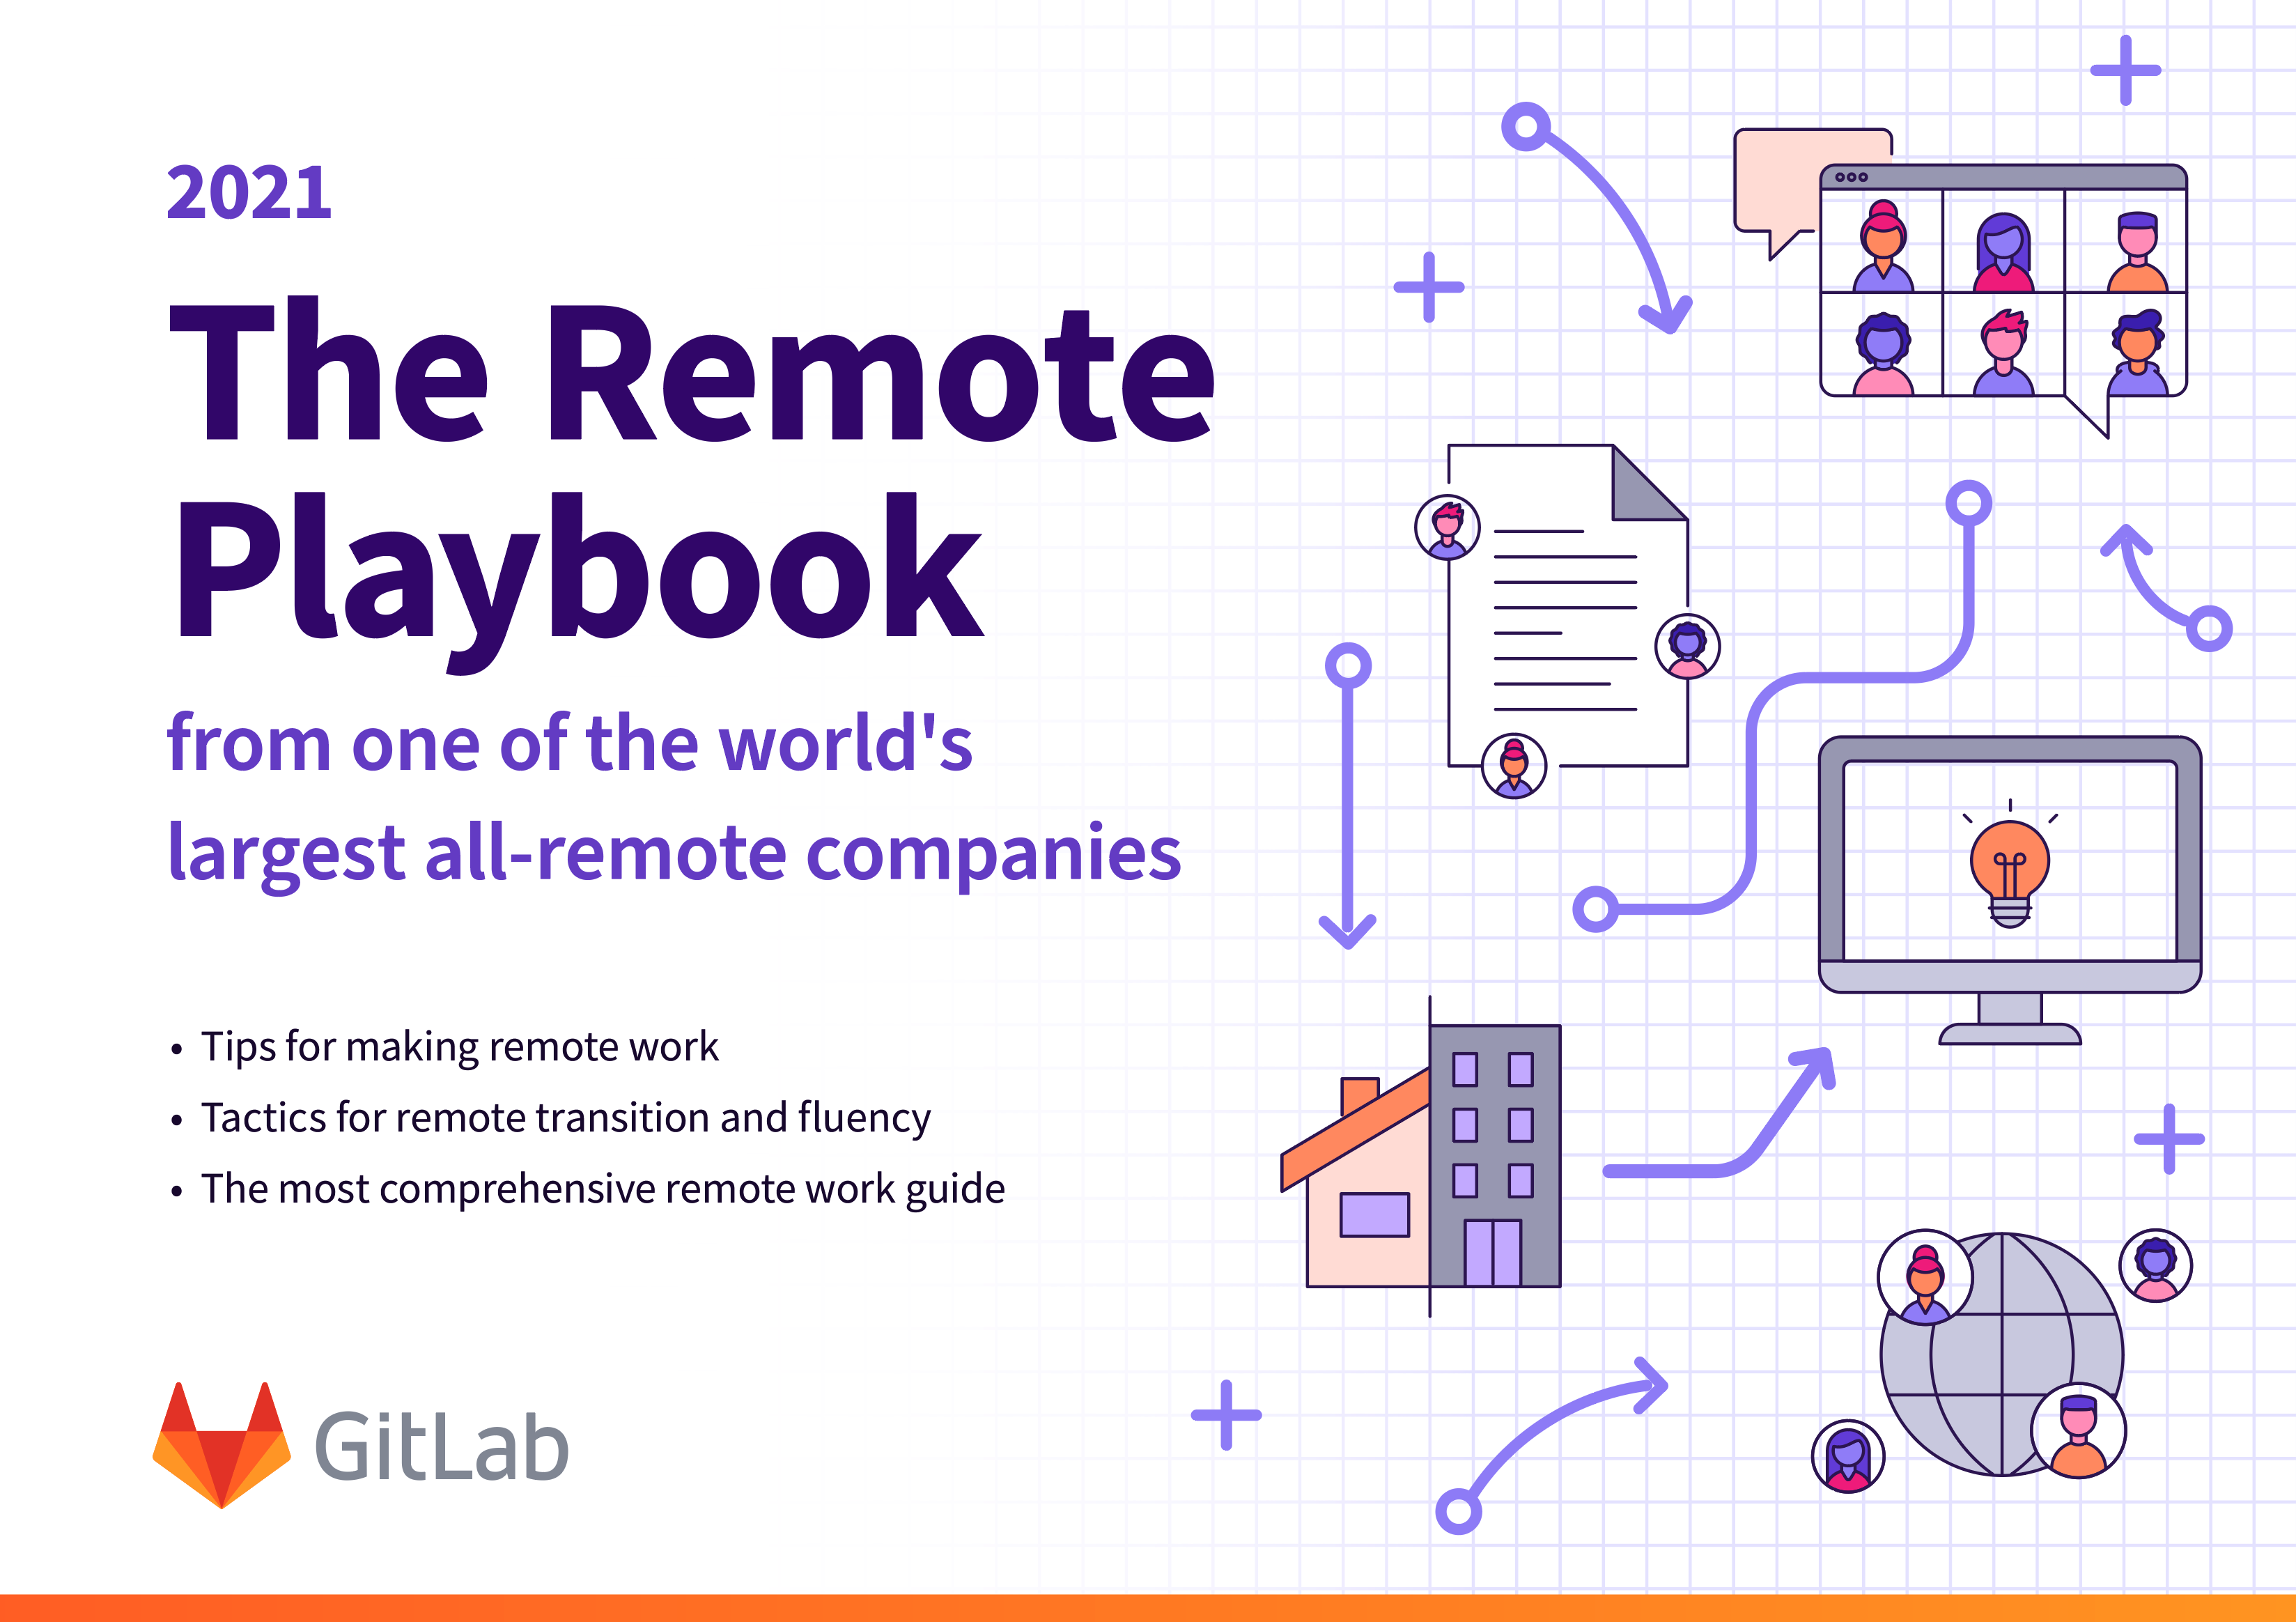 Remote playbook cover